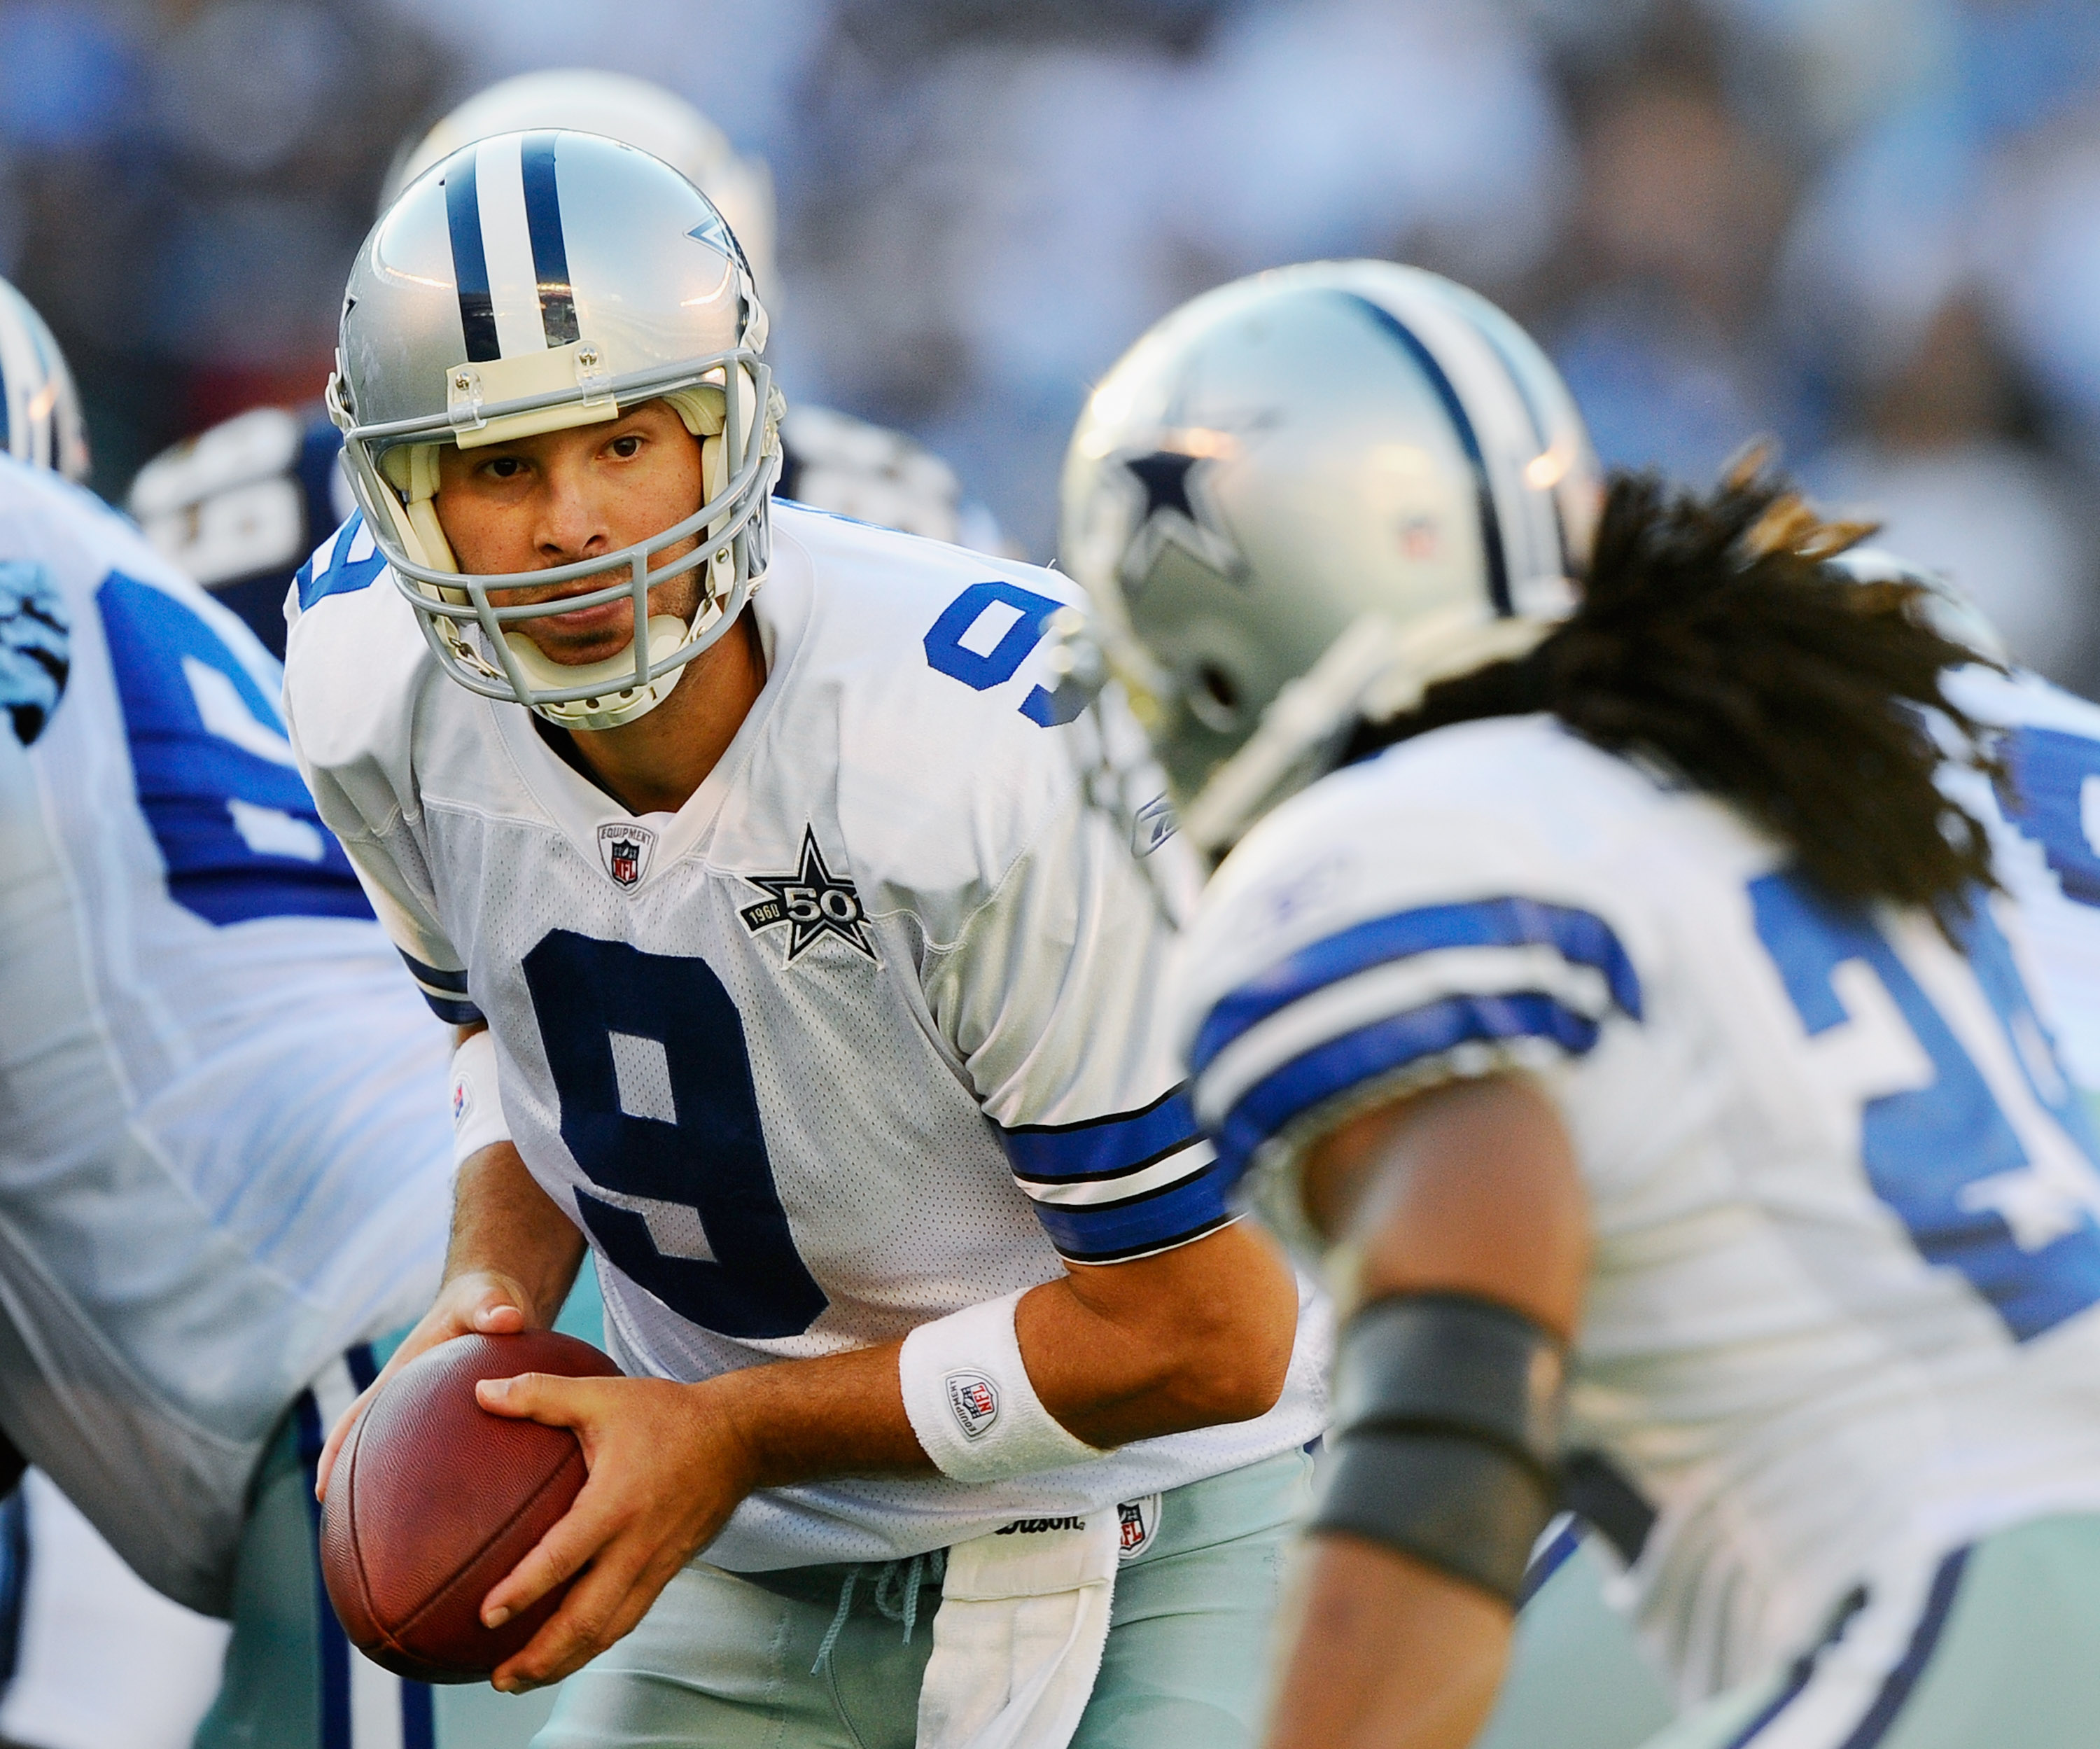 SAN DIEGO - AUGUST 21  Quarterback Tony Romo  9 of the Dallas Cowboys looks 6c2c51223